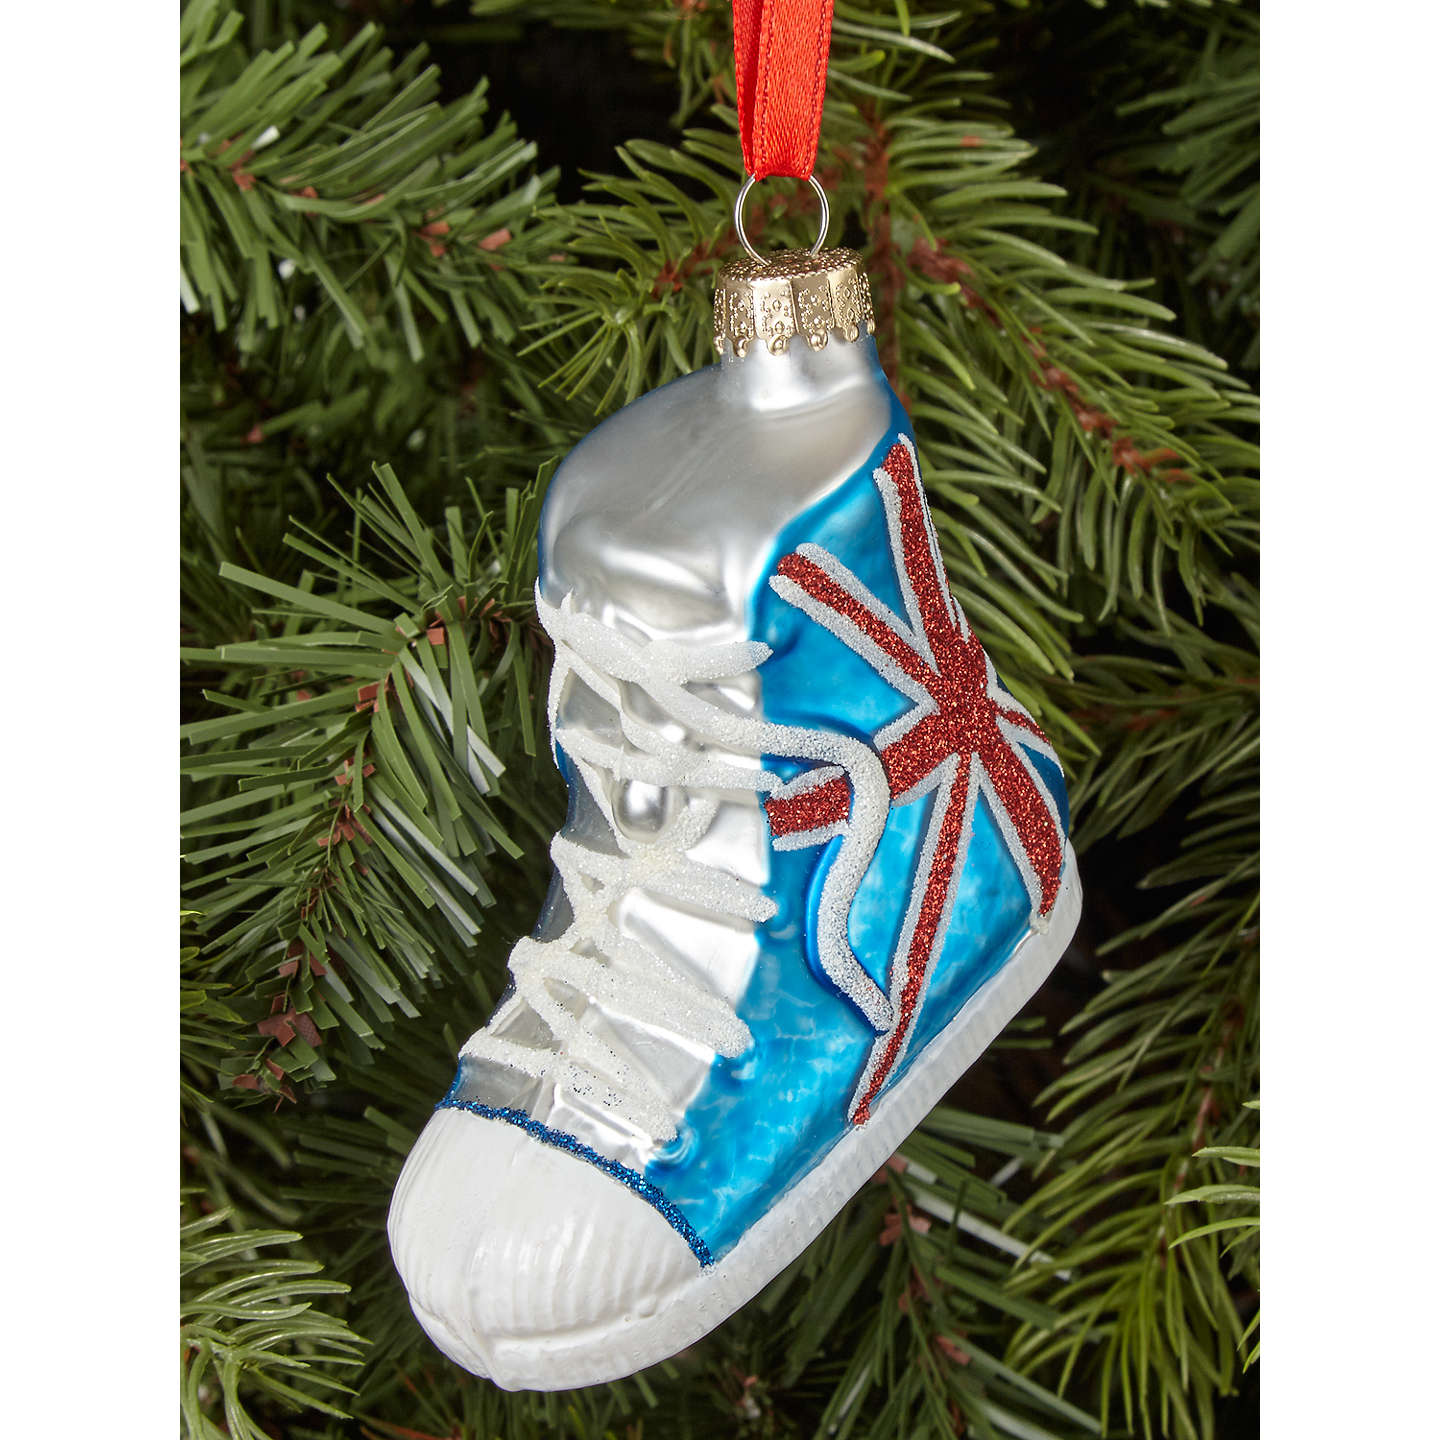 BuyJohn Lewis Tourism Union Jack Trainer Bauble Online at johnlewis.com